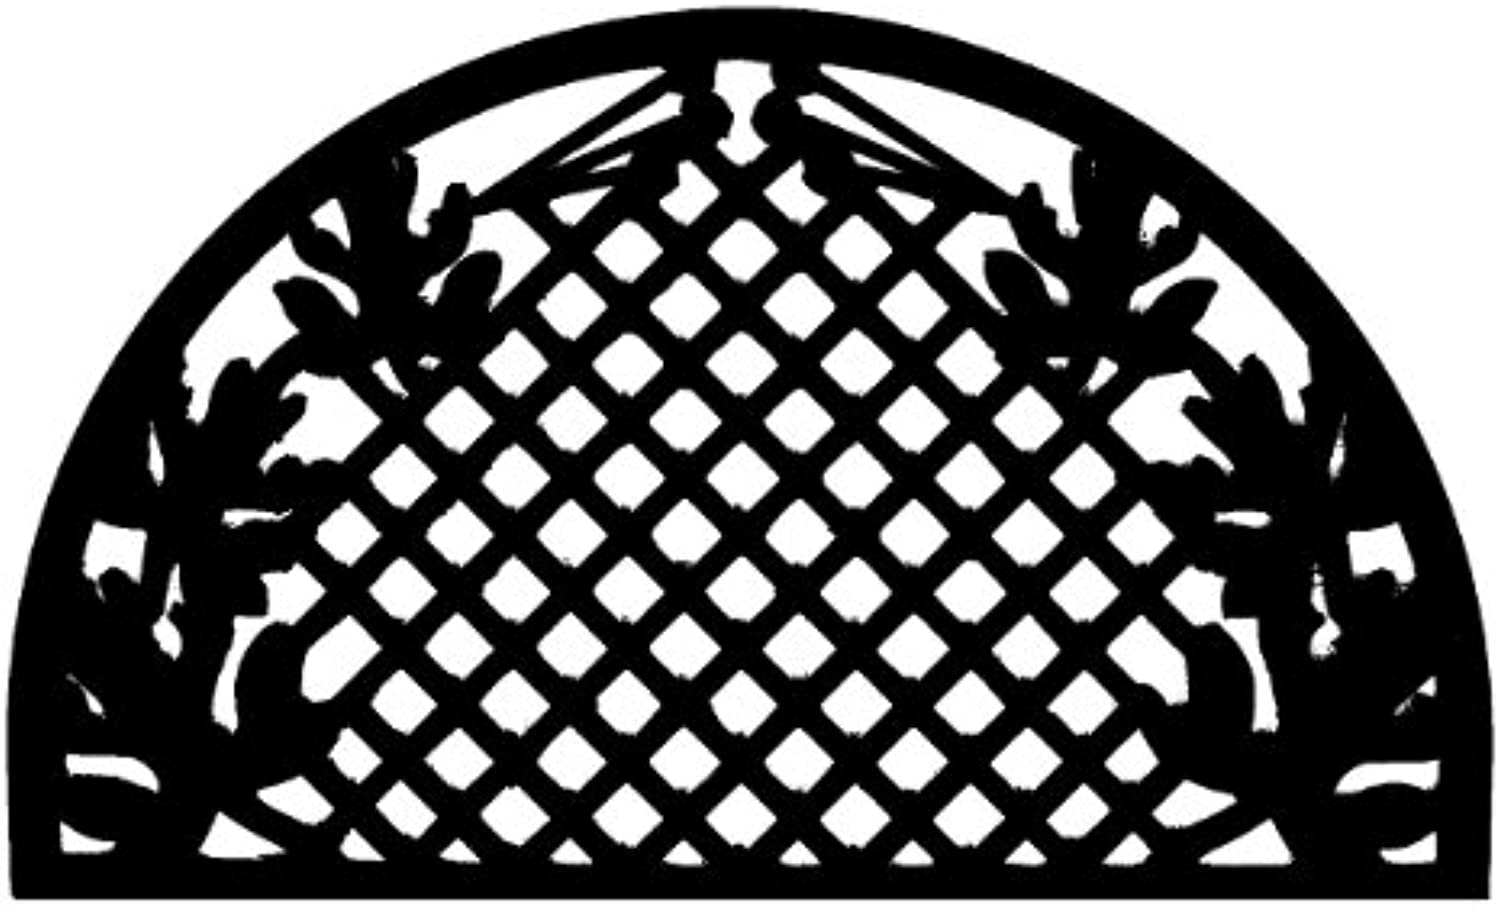 Imports Decor Half-Round Rubber Doormat Grid Leaves 18-inch by 30-inch